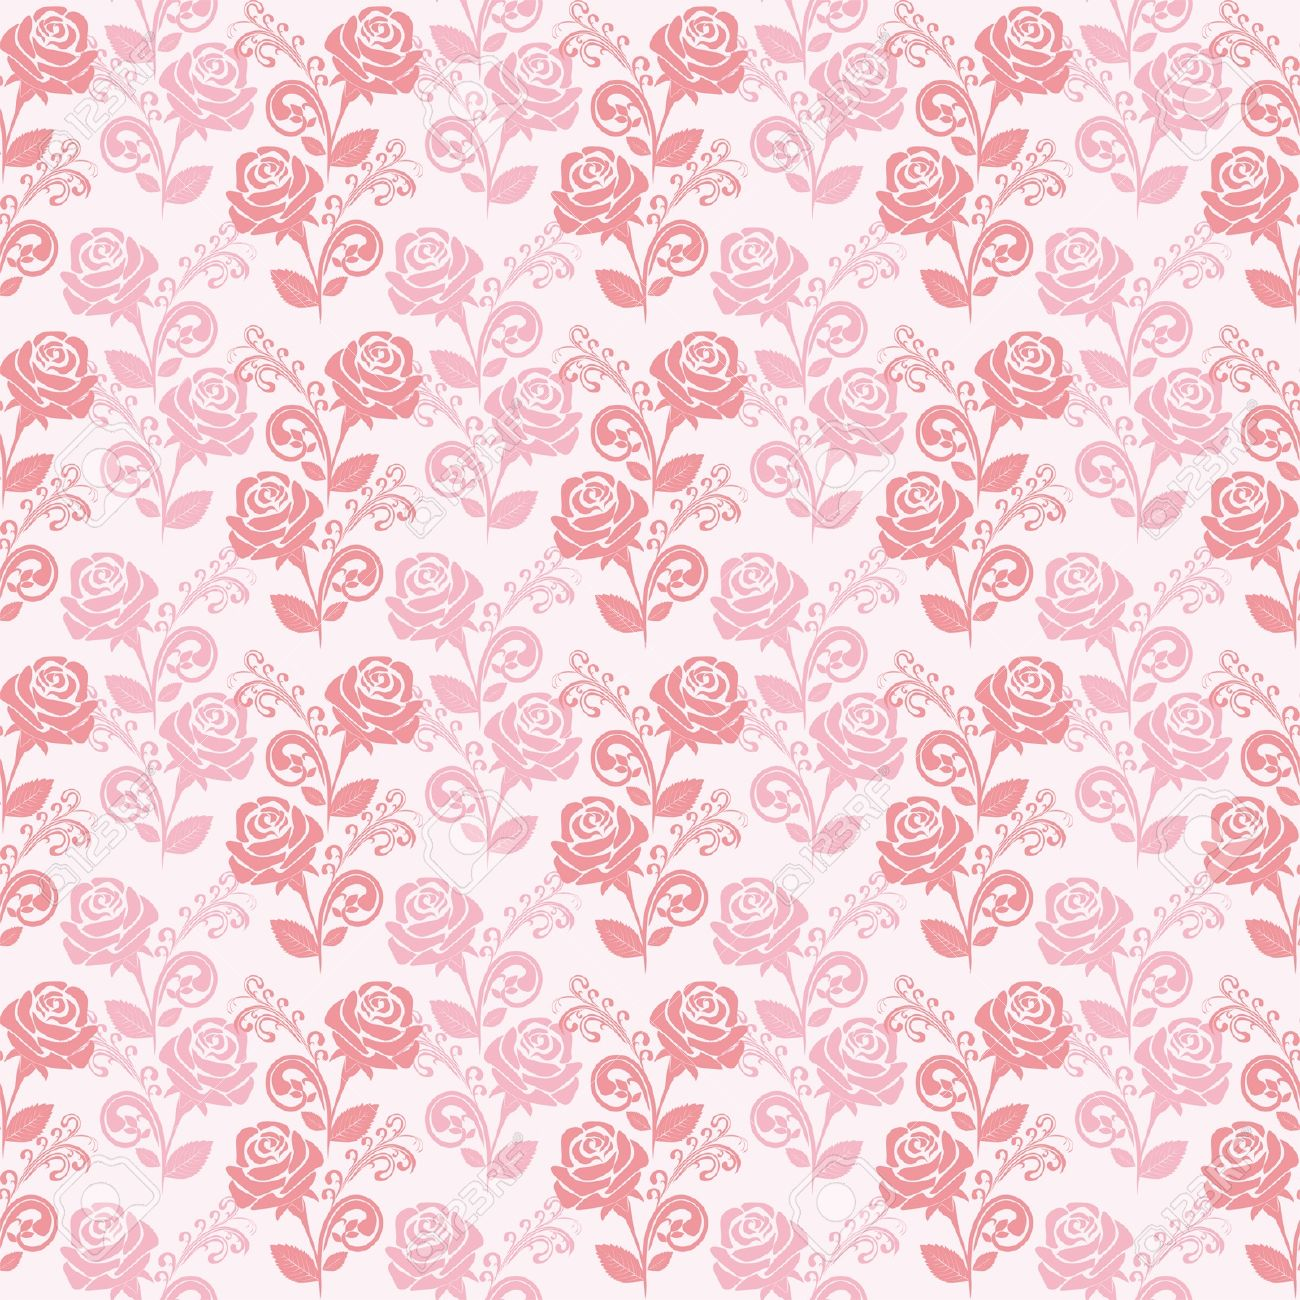 Seamless Gently Pink Wallpaper With Roses Stock Vector